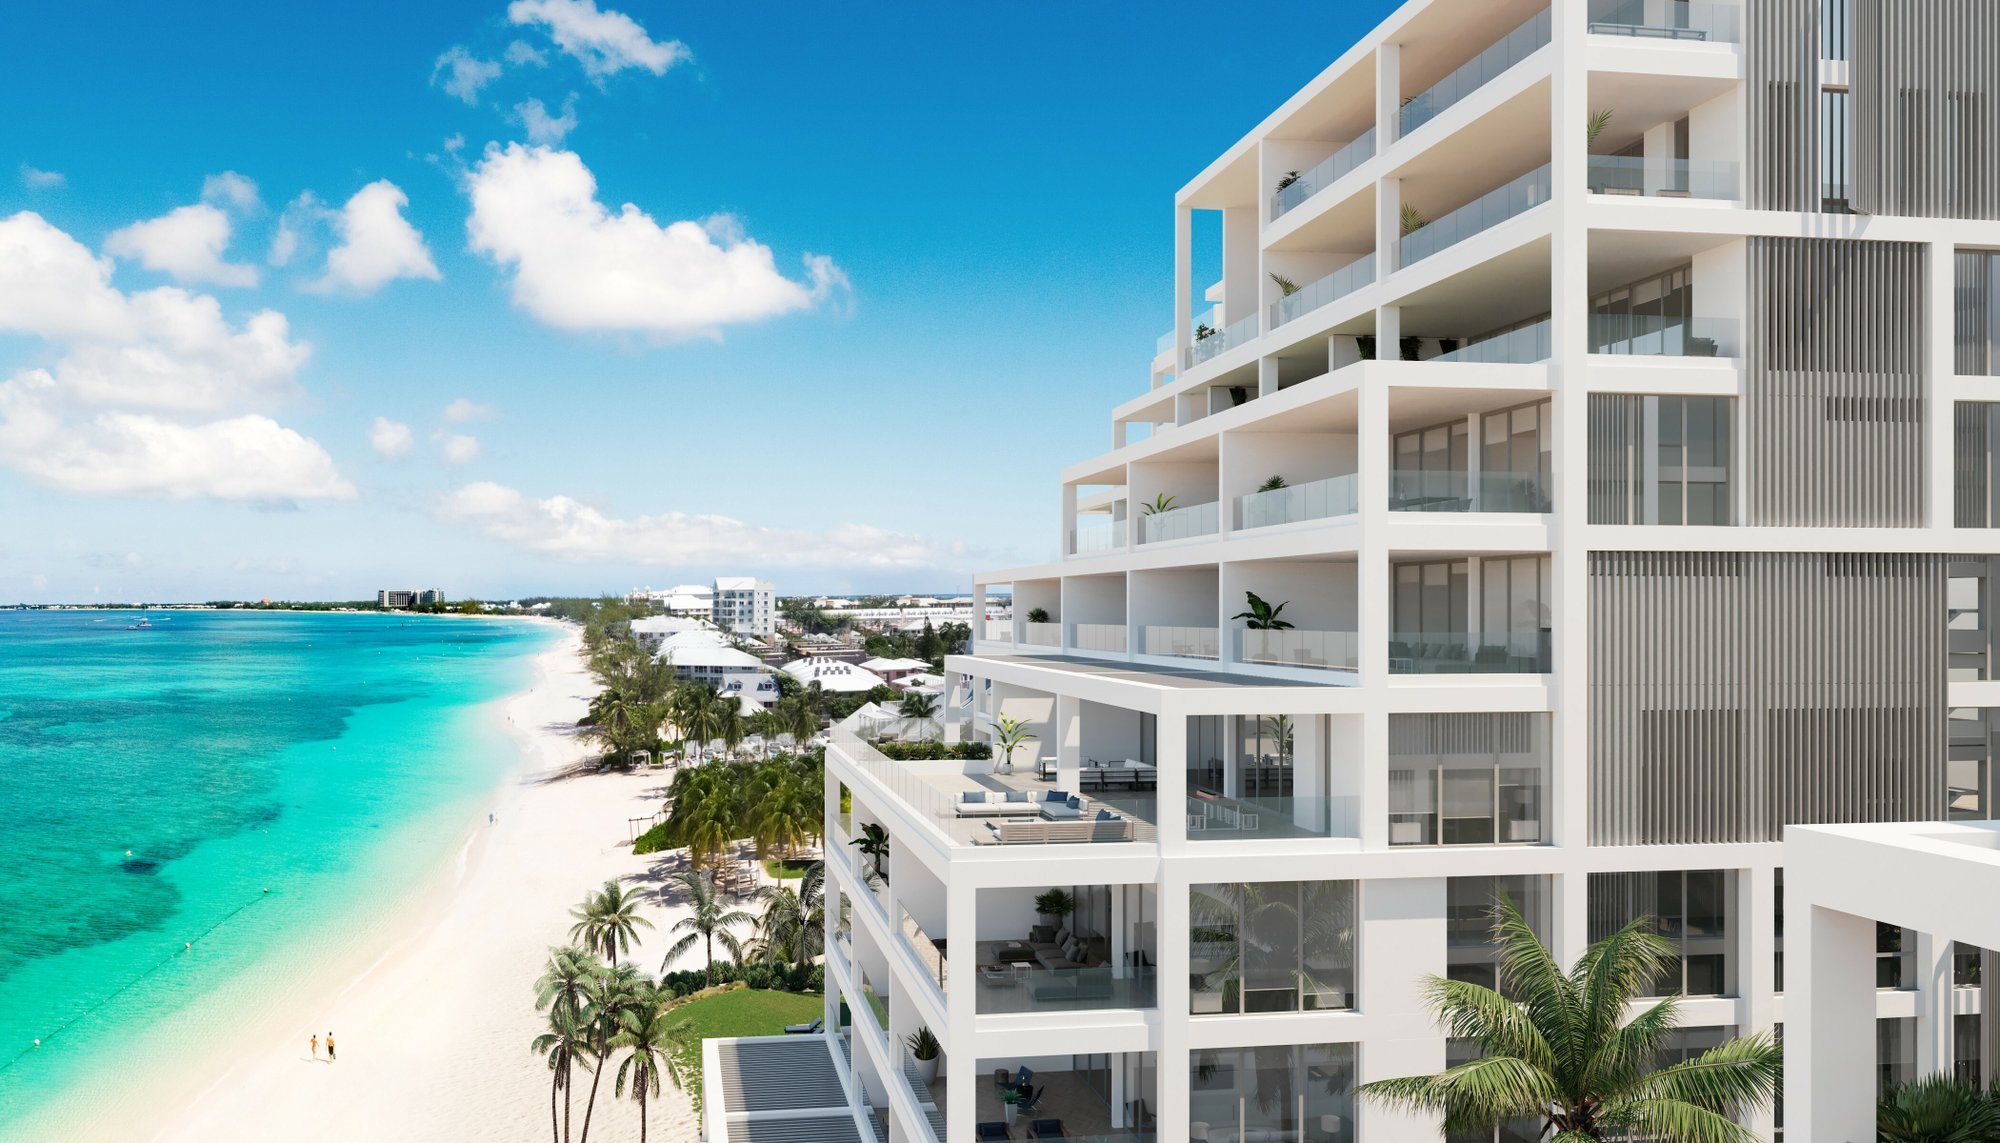 Penthouse in George Town, George Town, Cayman Islands 1 - 11568314